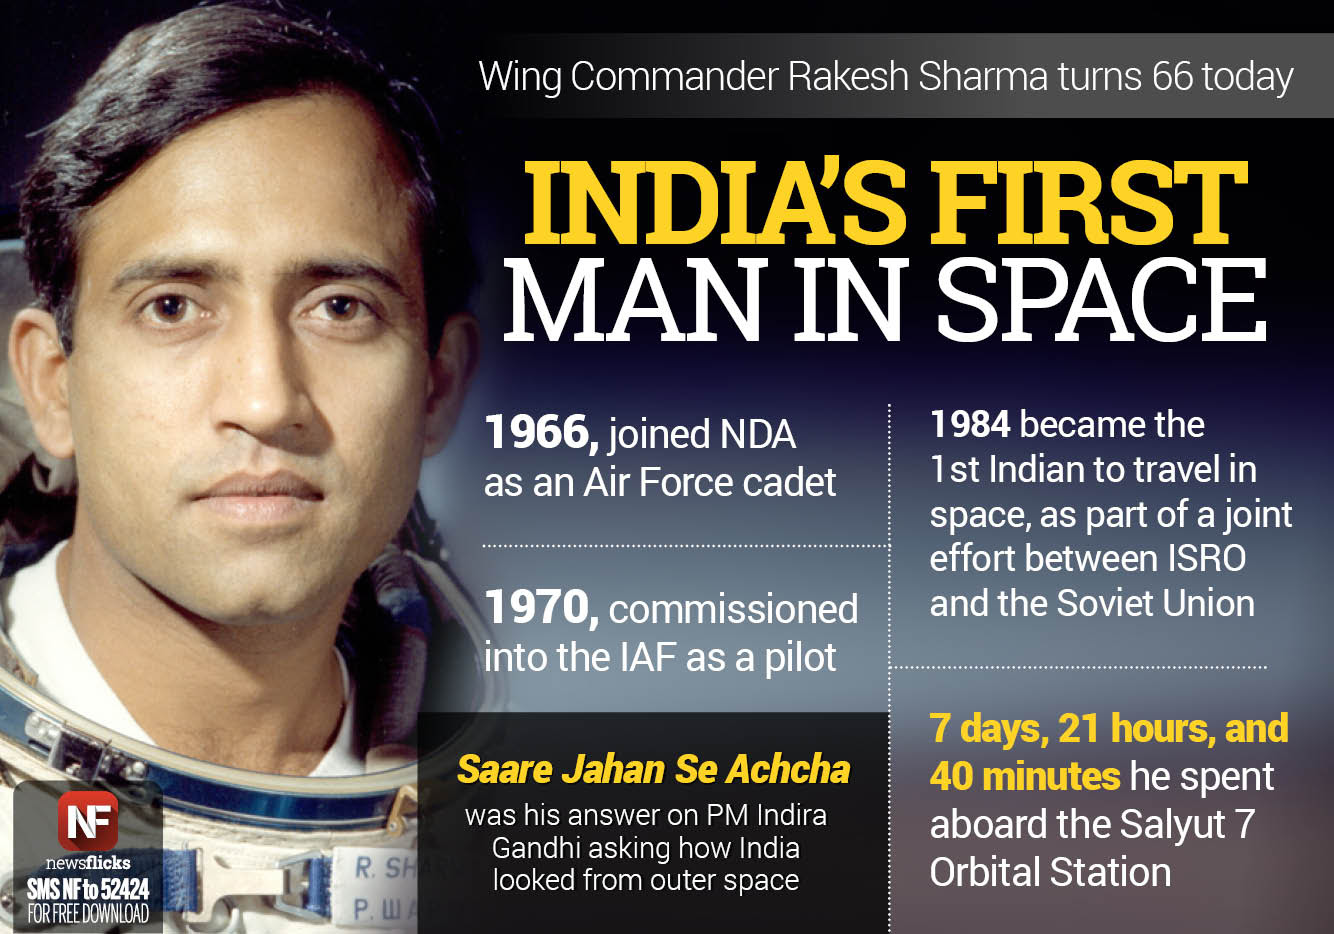 Today is the Birthday of Rakesh Sharma, the first Indian in Space.